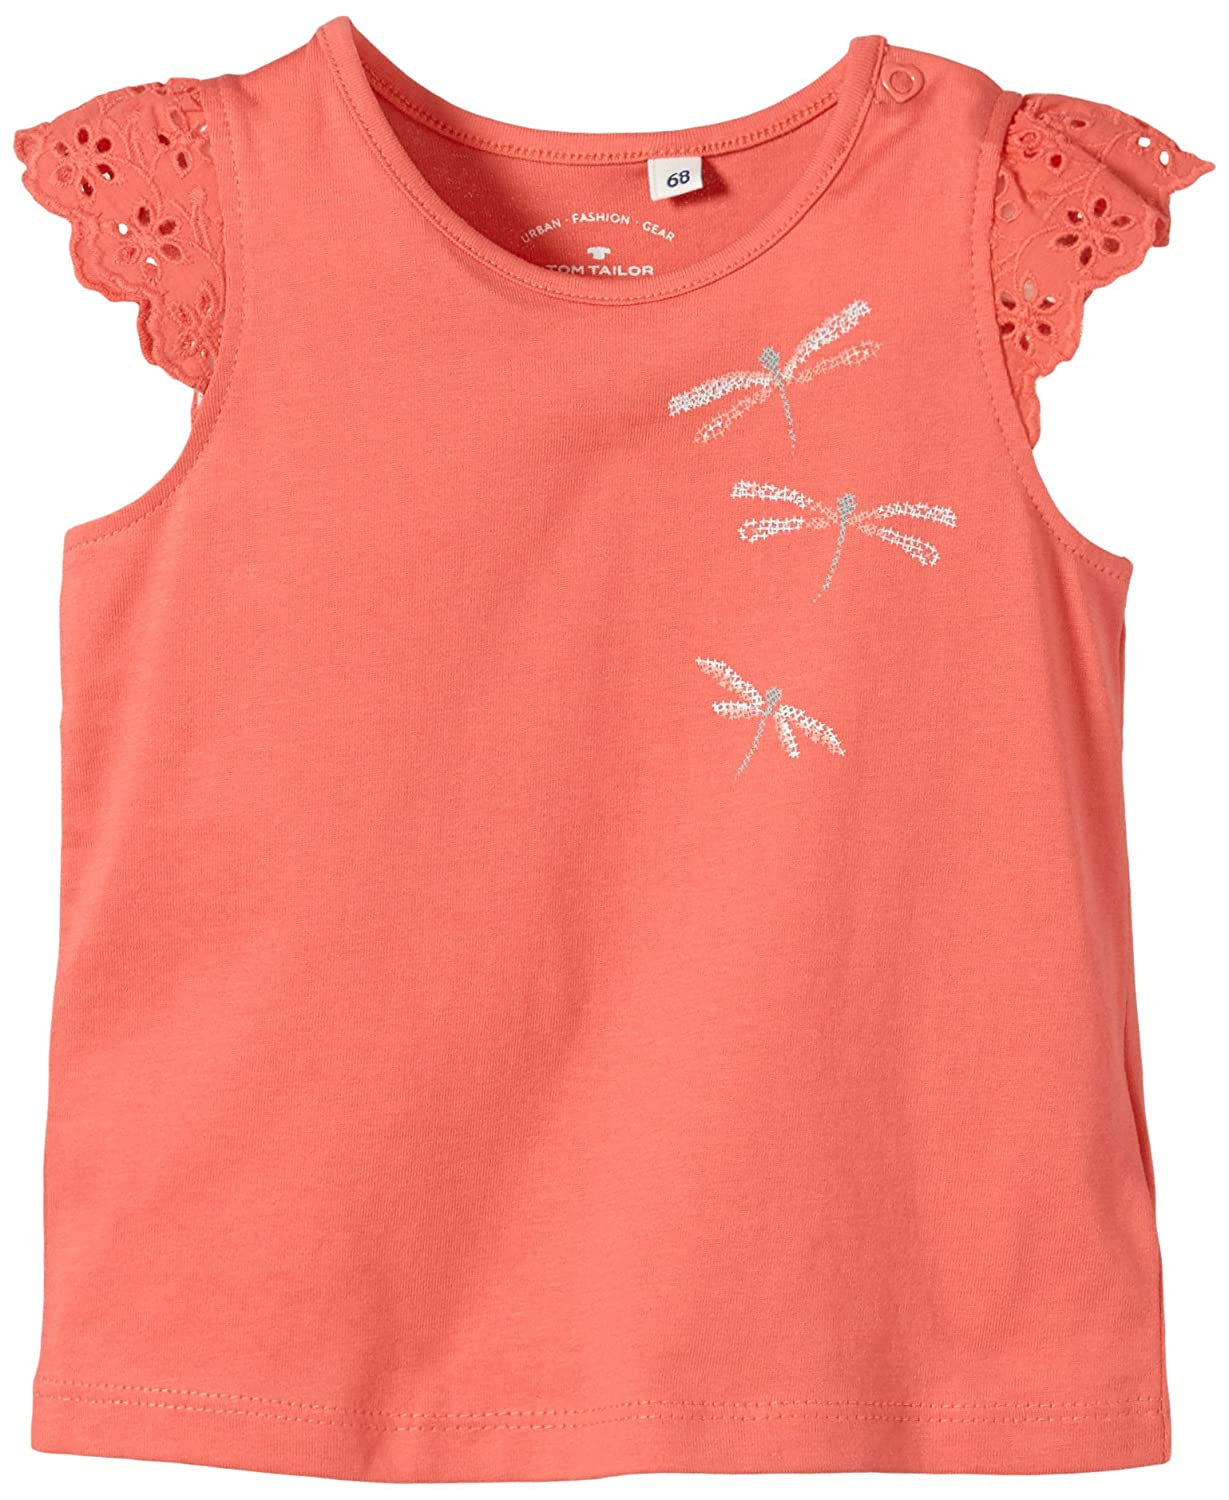 TOM TAILOR Kids Baby - Mädchen Top Lace Wing Sleeve top/504 Gr. 62 Rot (Blazing Coral 5486) 10306544021